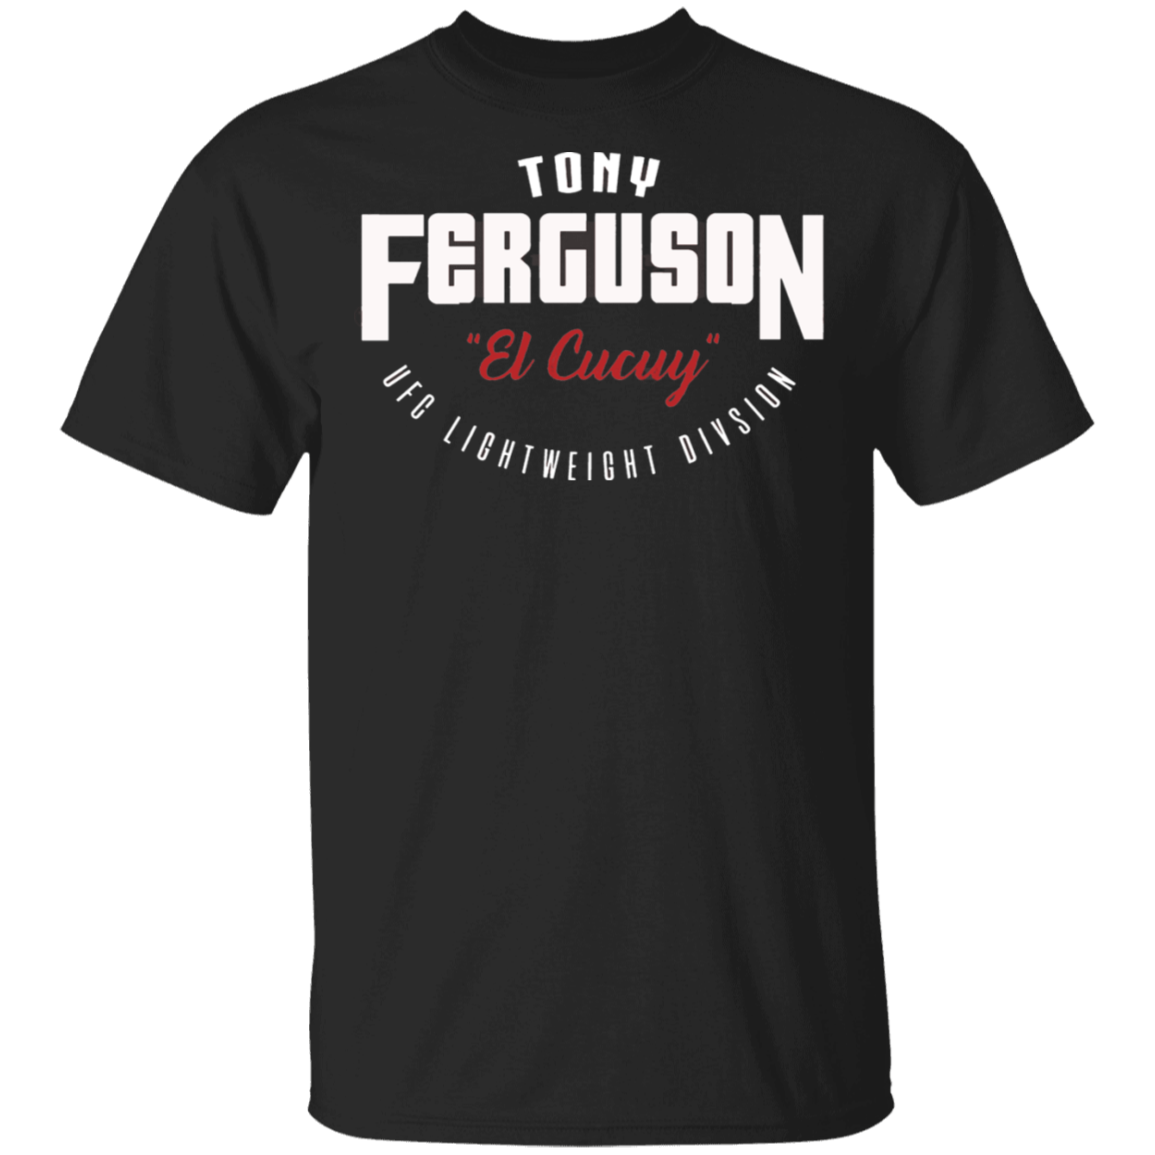 Tony Ferguson Team El Cucuy 2020 Black T Shirt Men Women M-XXXL Tee Shirt Classic Custom Design